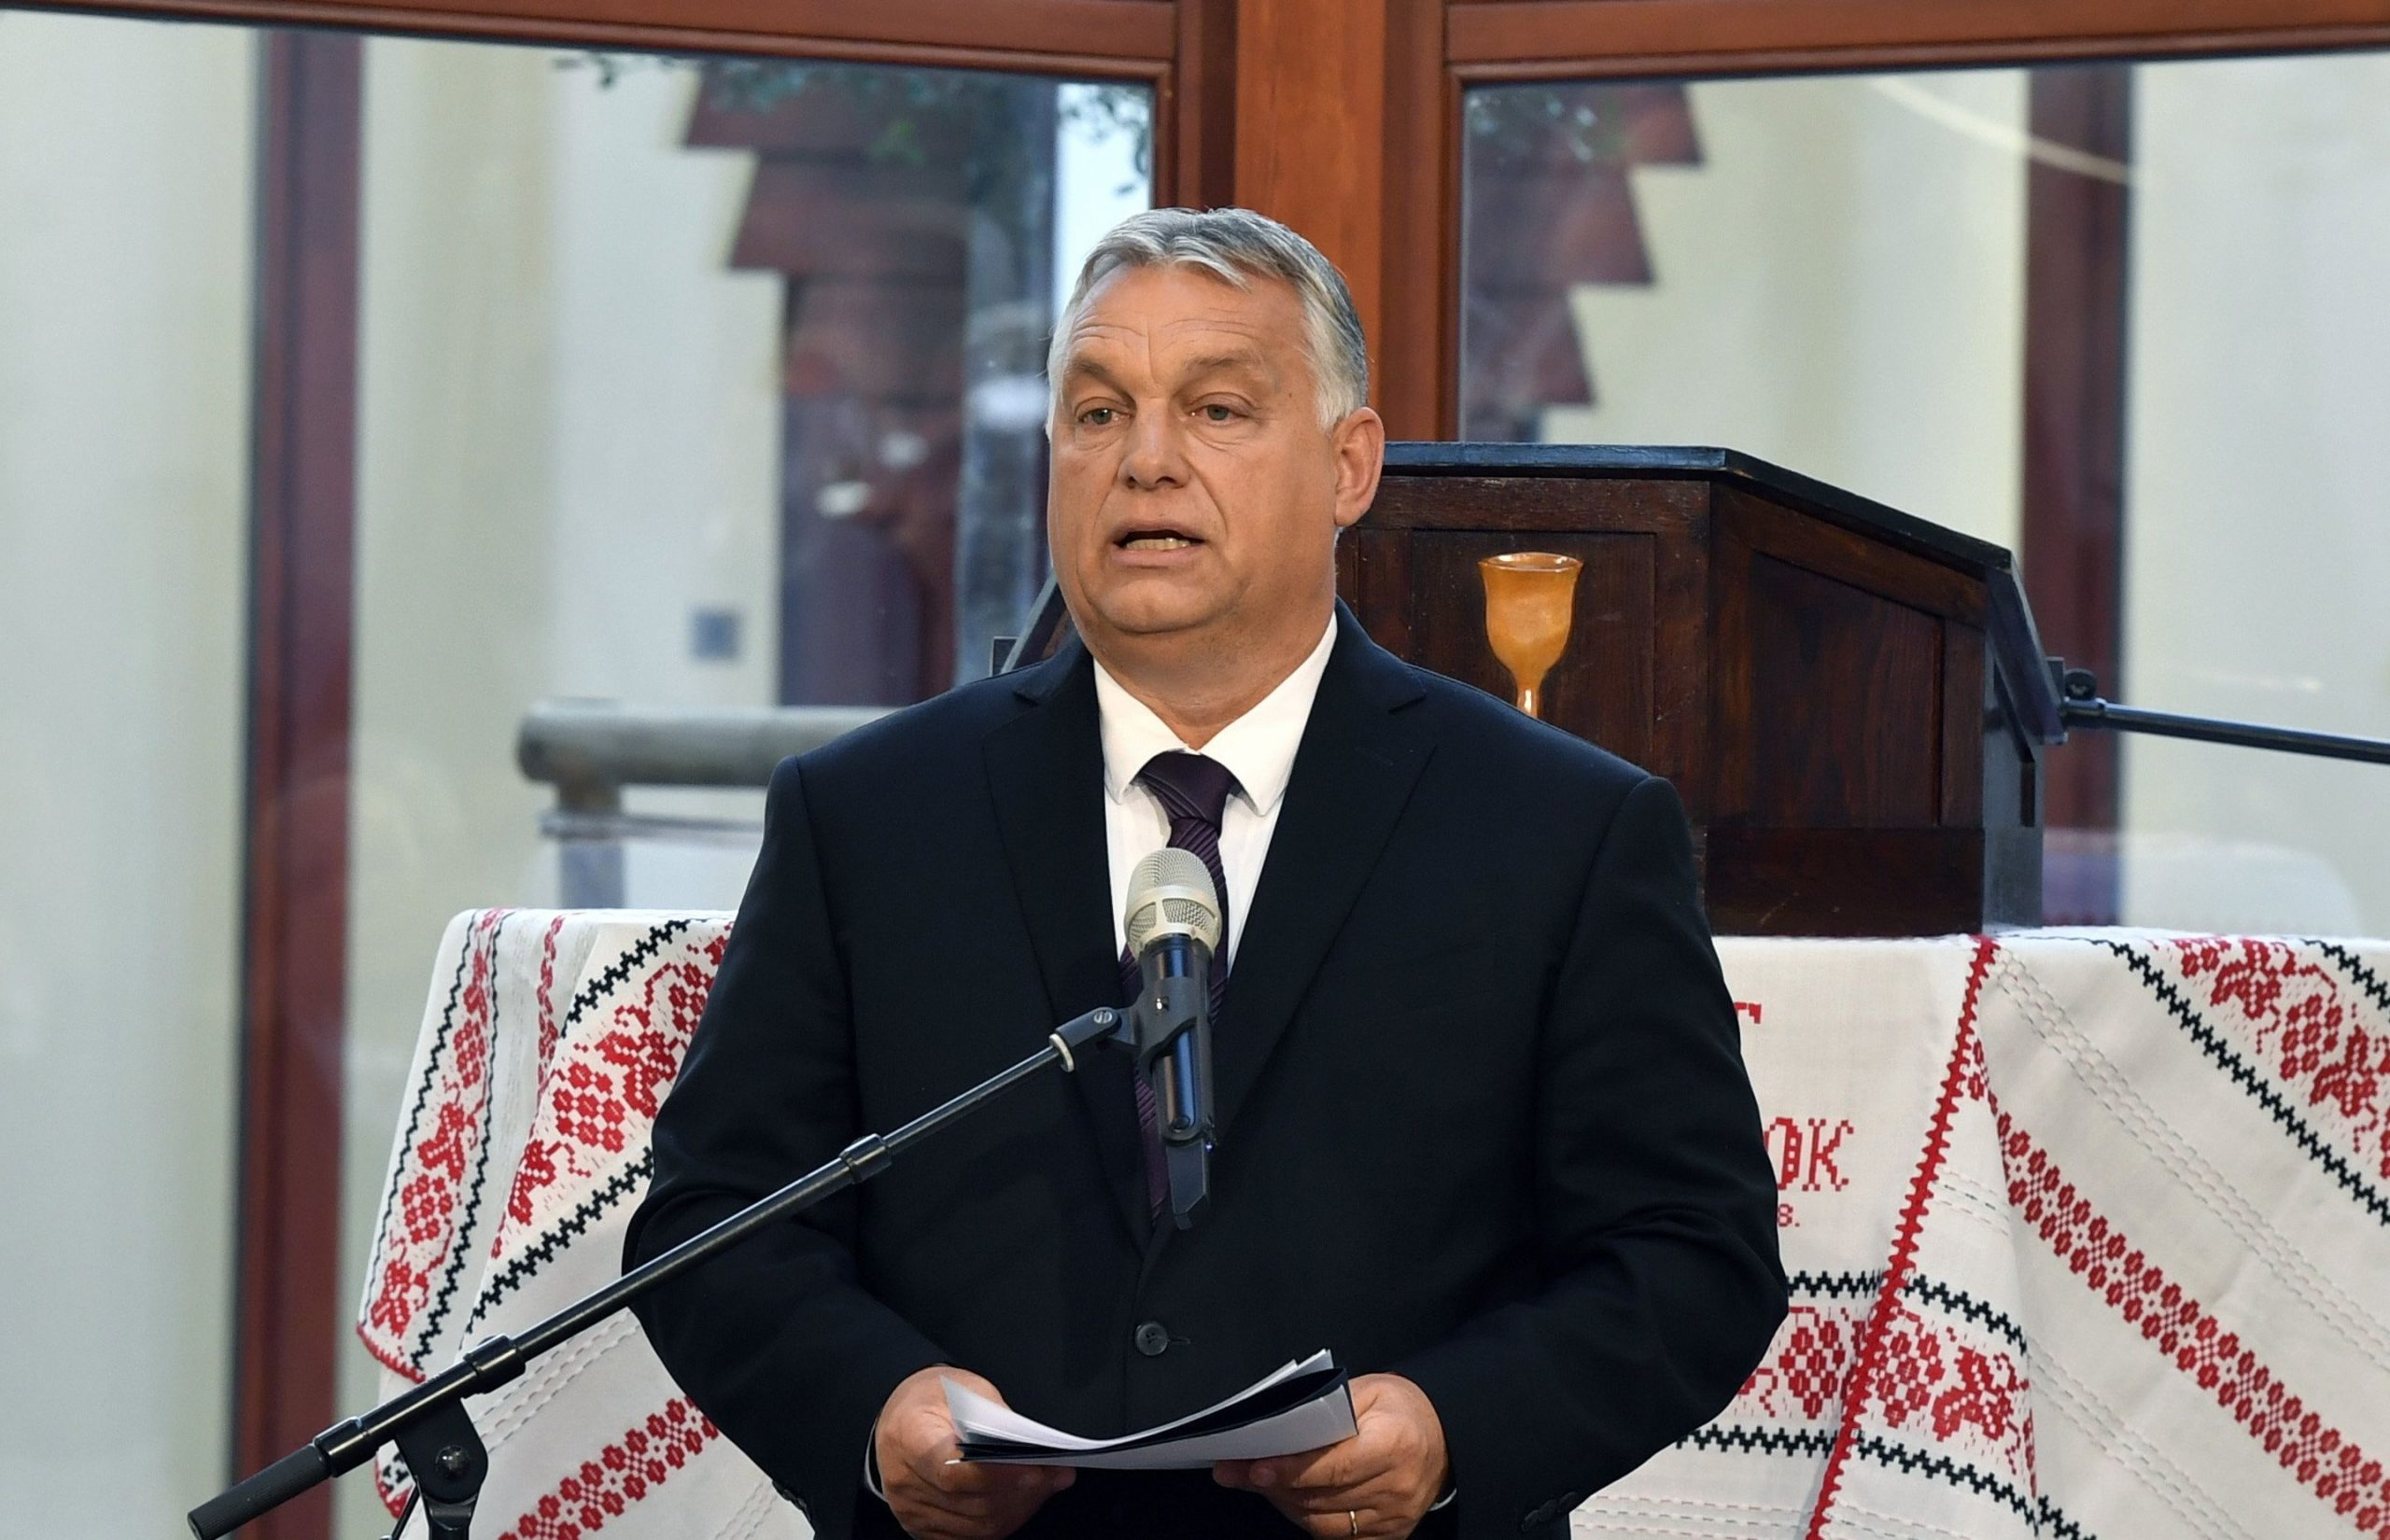 PM Orbán: Hungarians Can Only Survive as Christians, Each New Church 'Bastion in Nation's Struggle for Freedom and Greatness'